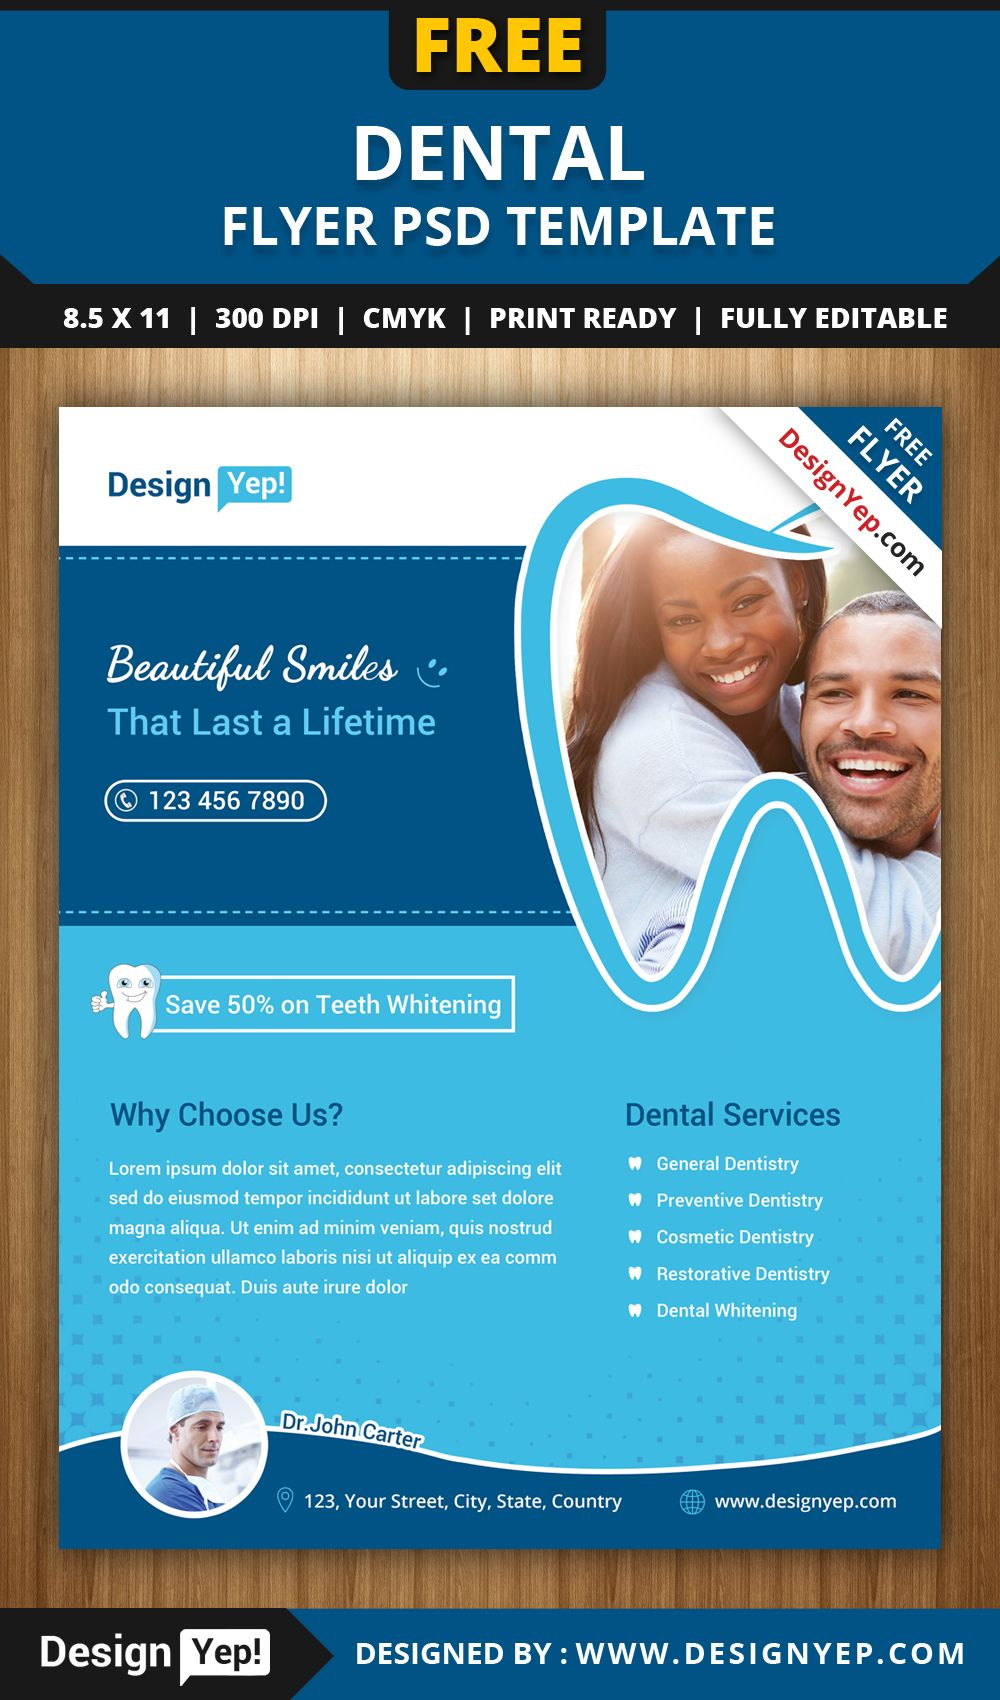 Free Dental Flyer Psd Template 1414 Designyep Free Flyers Psd